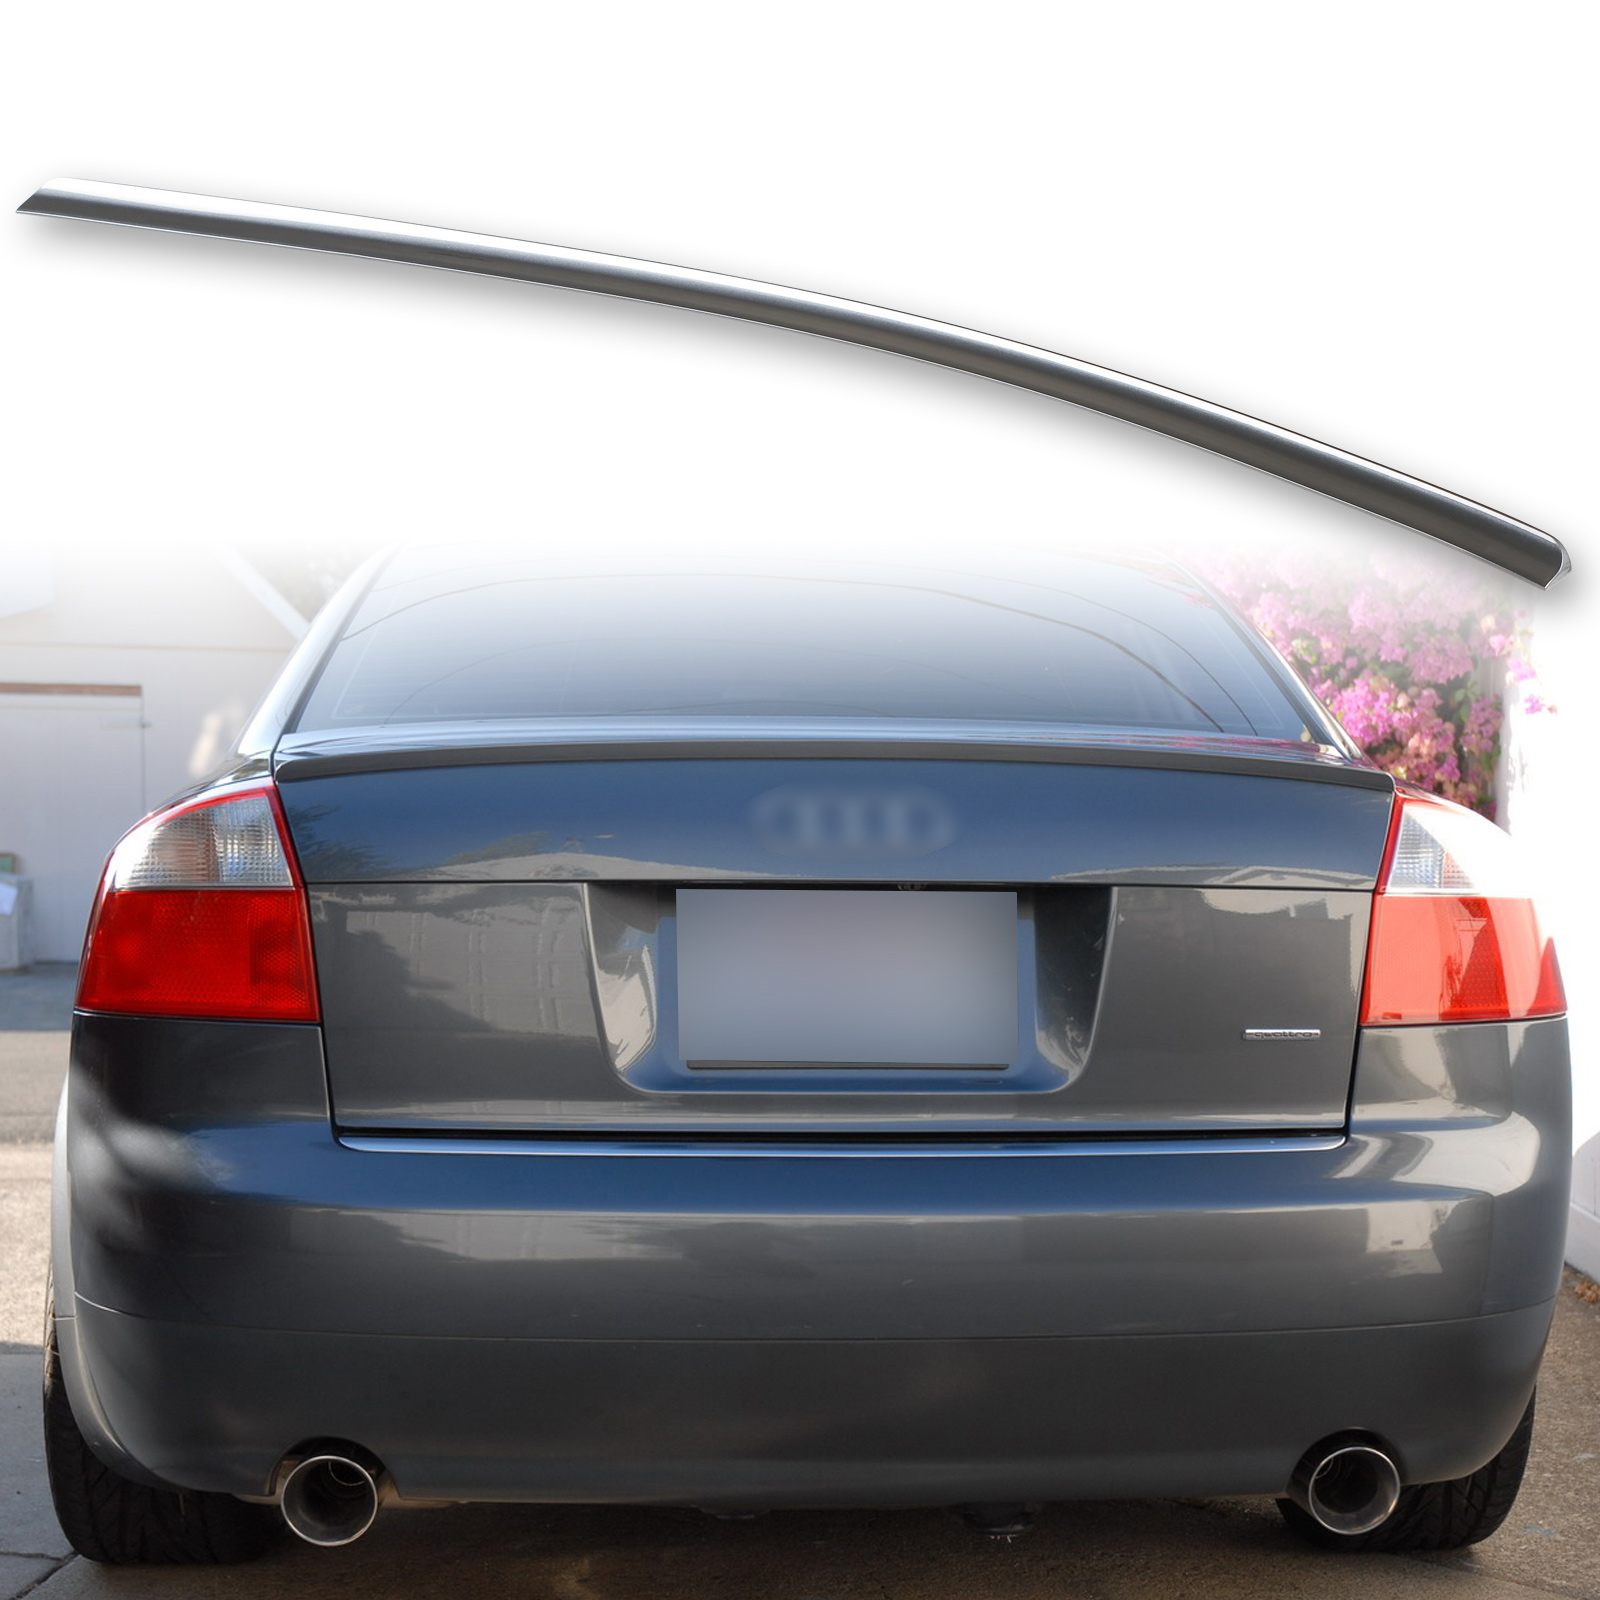 LY9B Brilliant Black FYRALIP Painted Factory Print Code Trunk Lip Wing Spoiler For 2006-2008 Audi A4 B7 Sedan Fast Delivery Easy Installation Perfect Fit